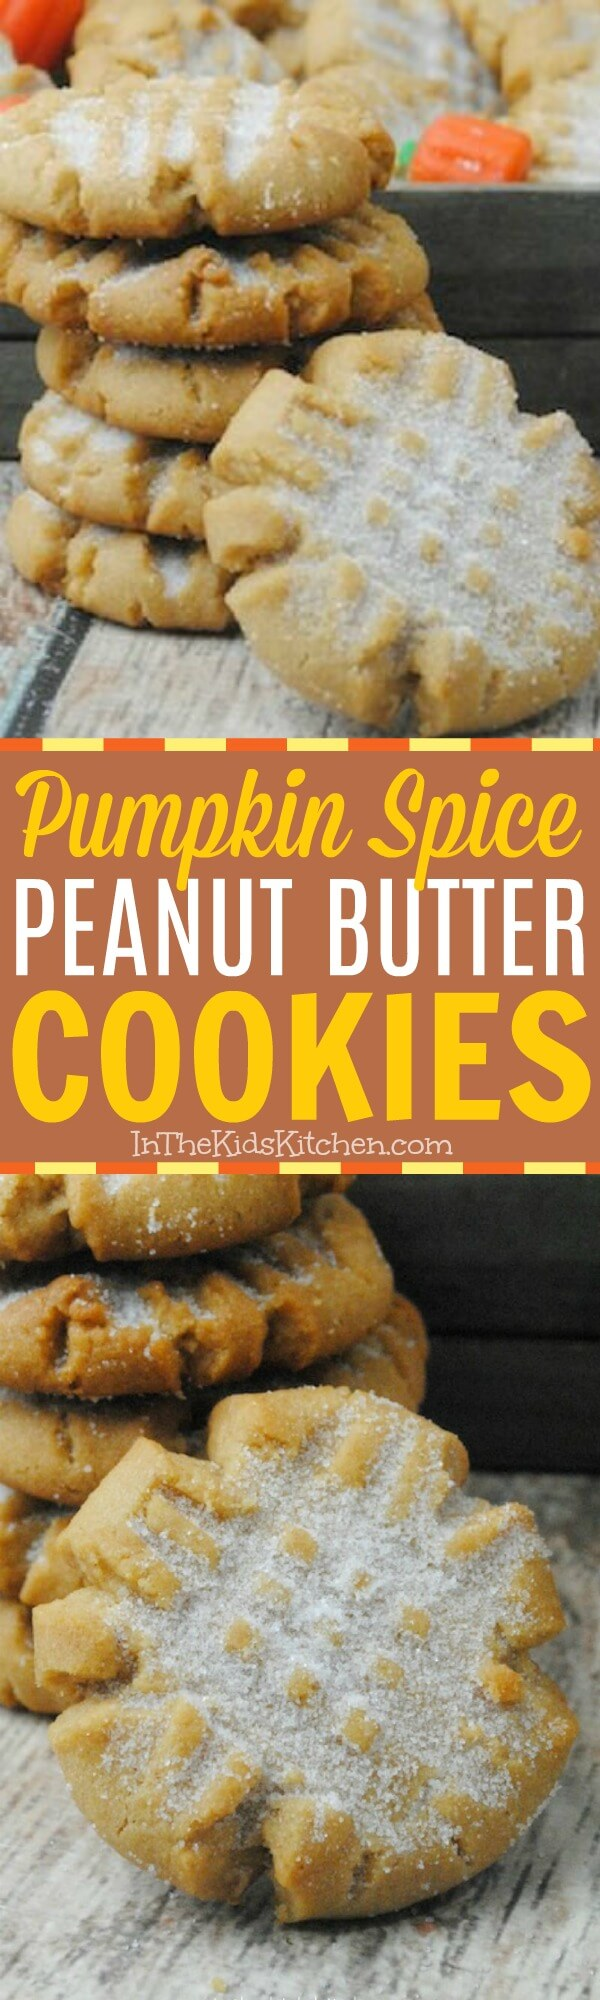 You'll want to savor every bite of these Pumpkin Spice Peanut Butter Cookies! An unexpectedly AMAZING flavor combination and the perfect fall dessert.